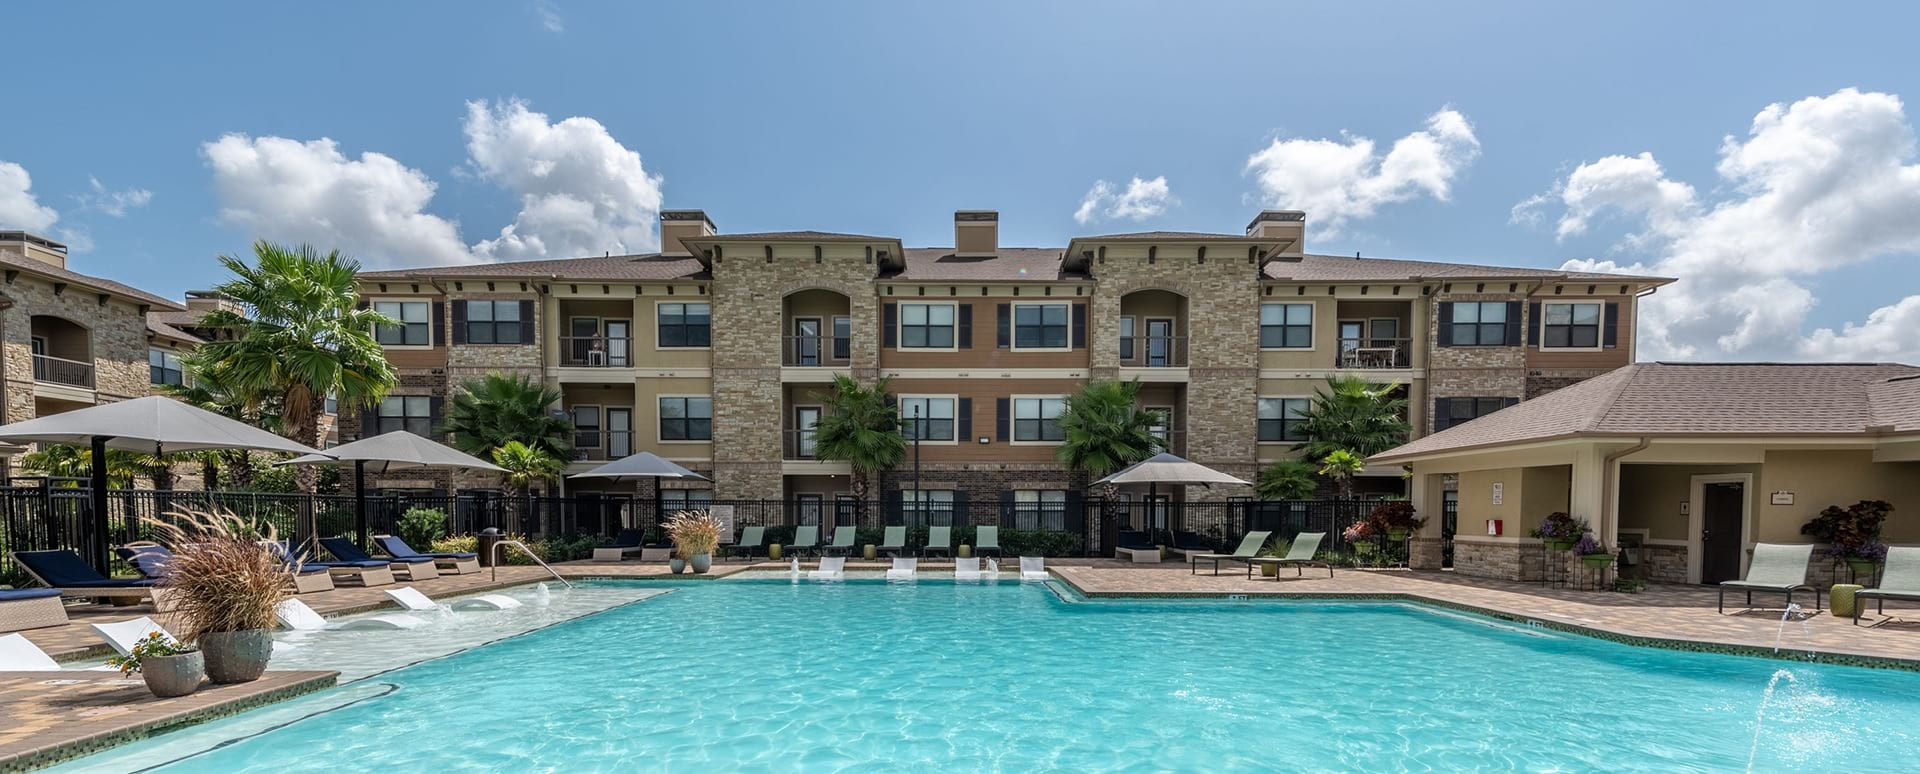 Resort style pool at Cortland Seven Meadows